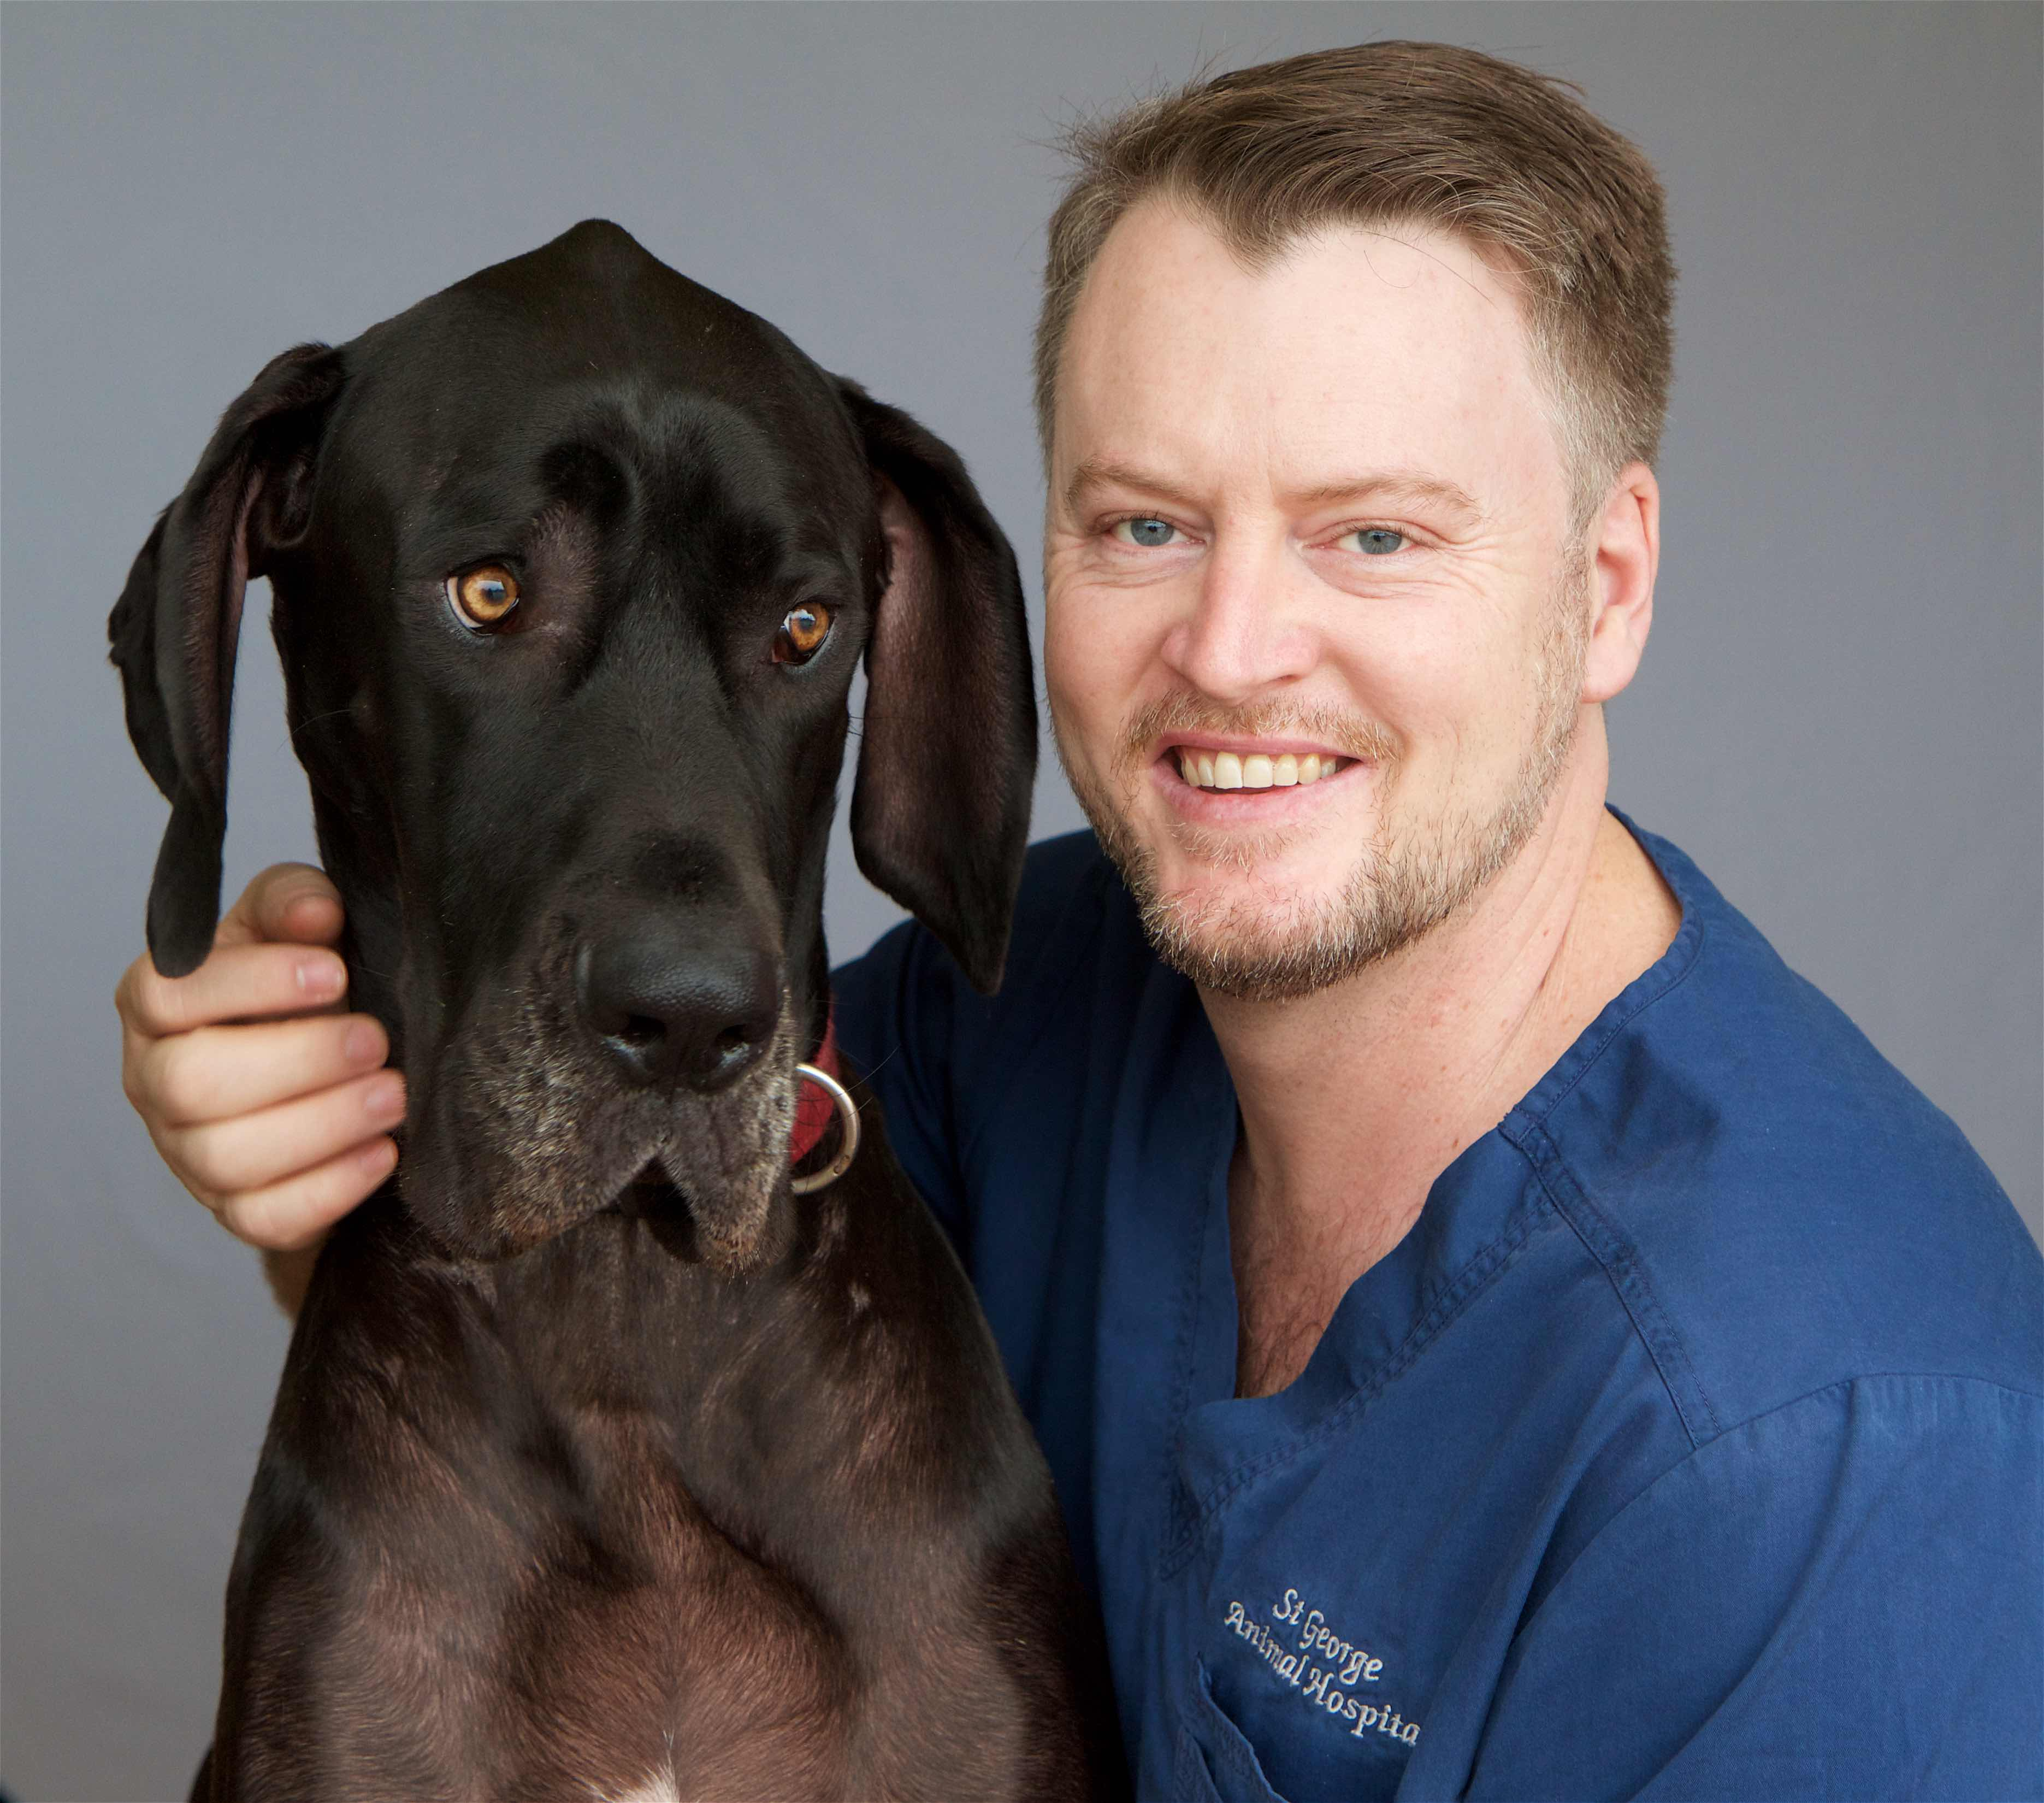 CMP shoot St George Animal Hospital